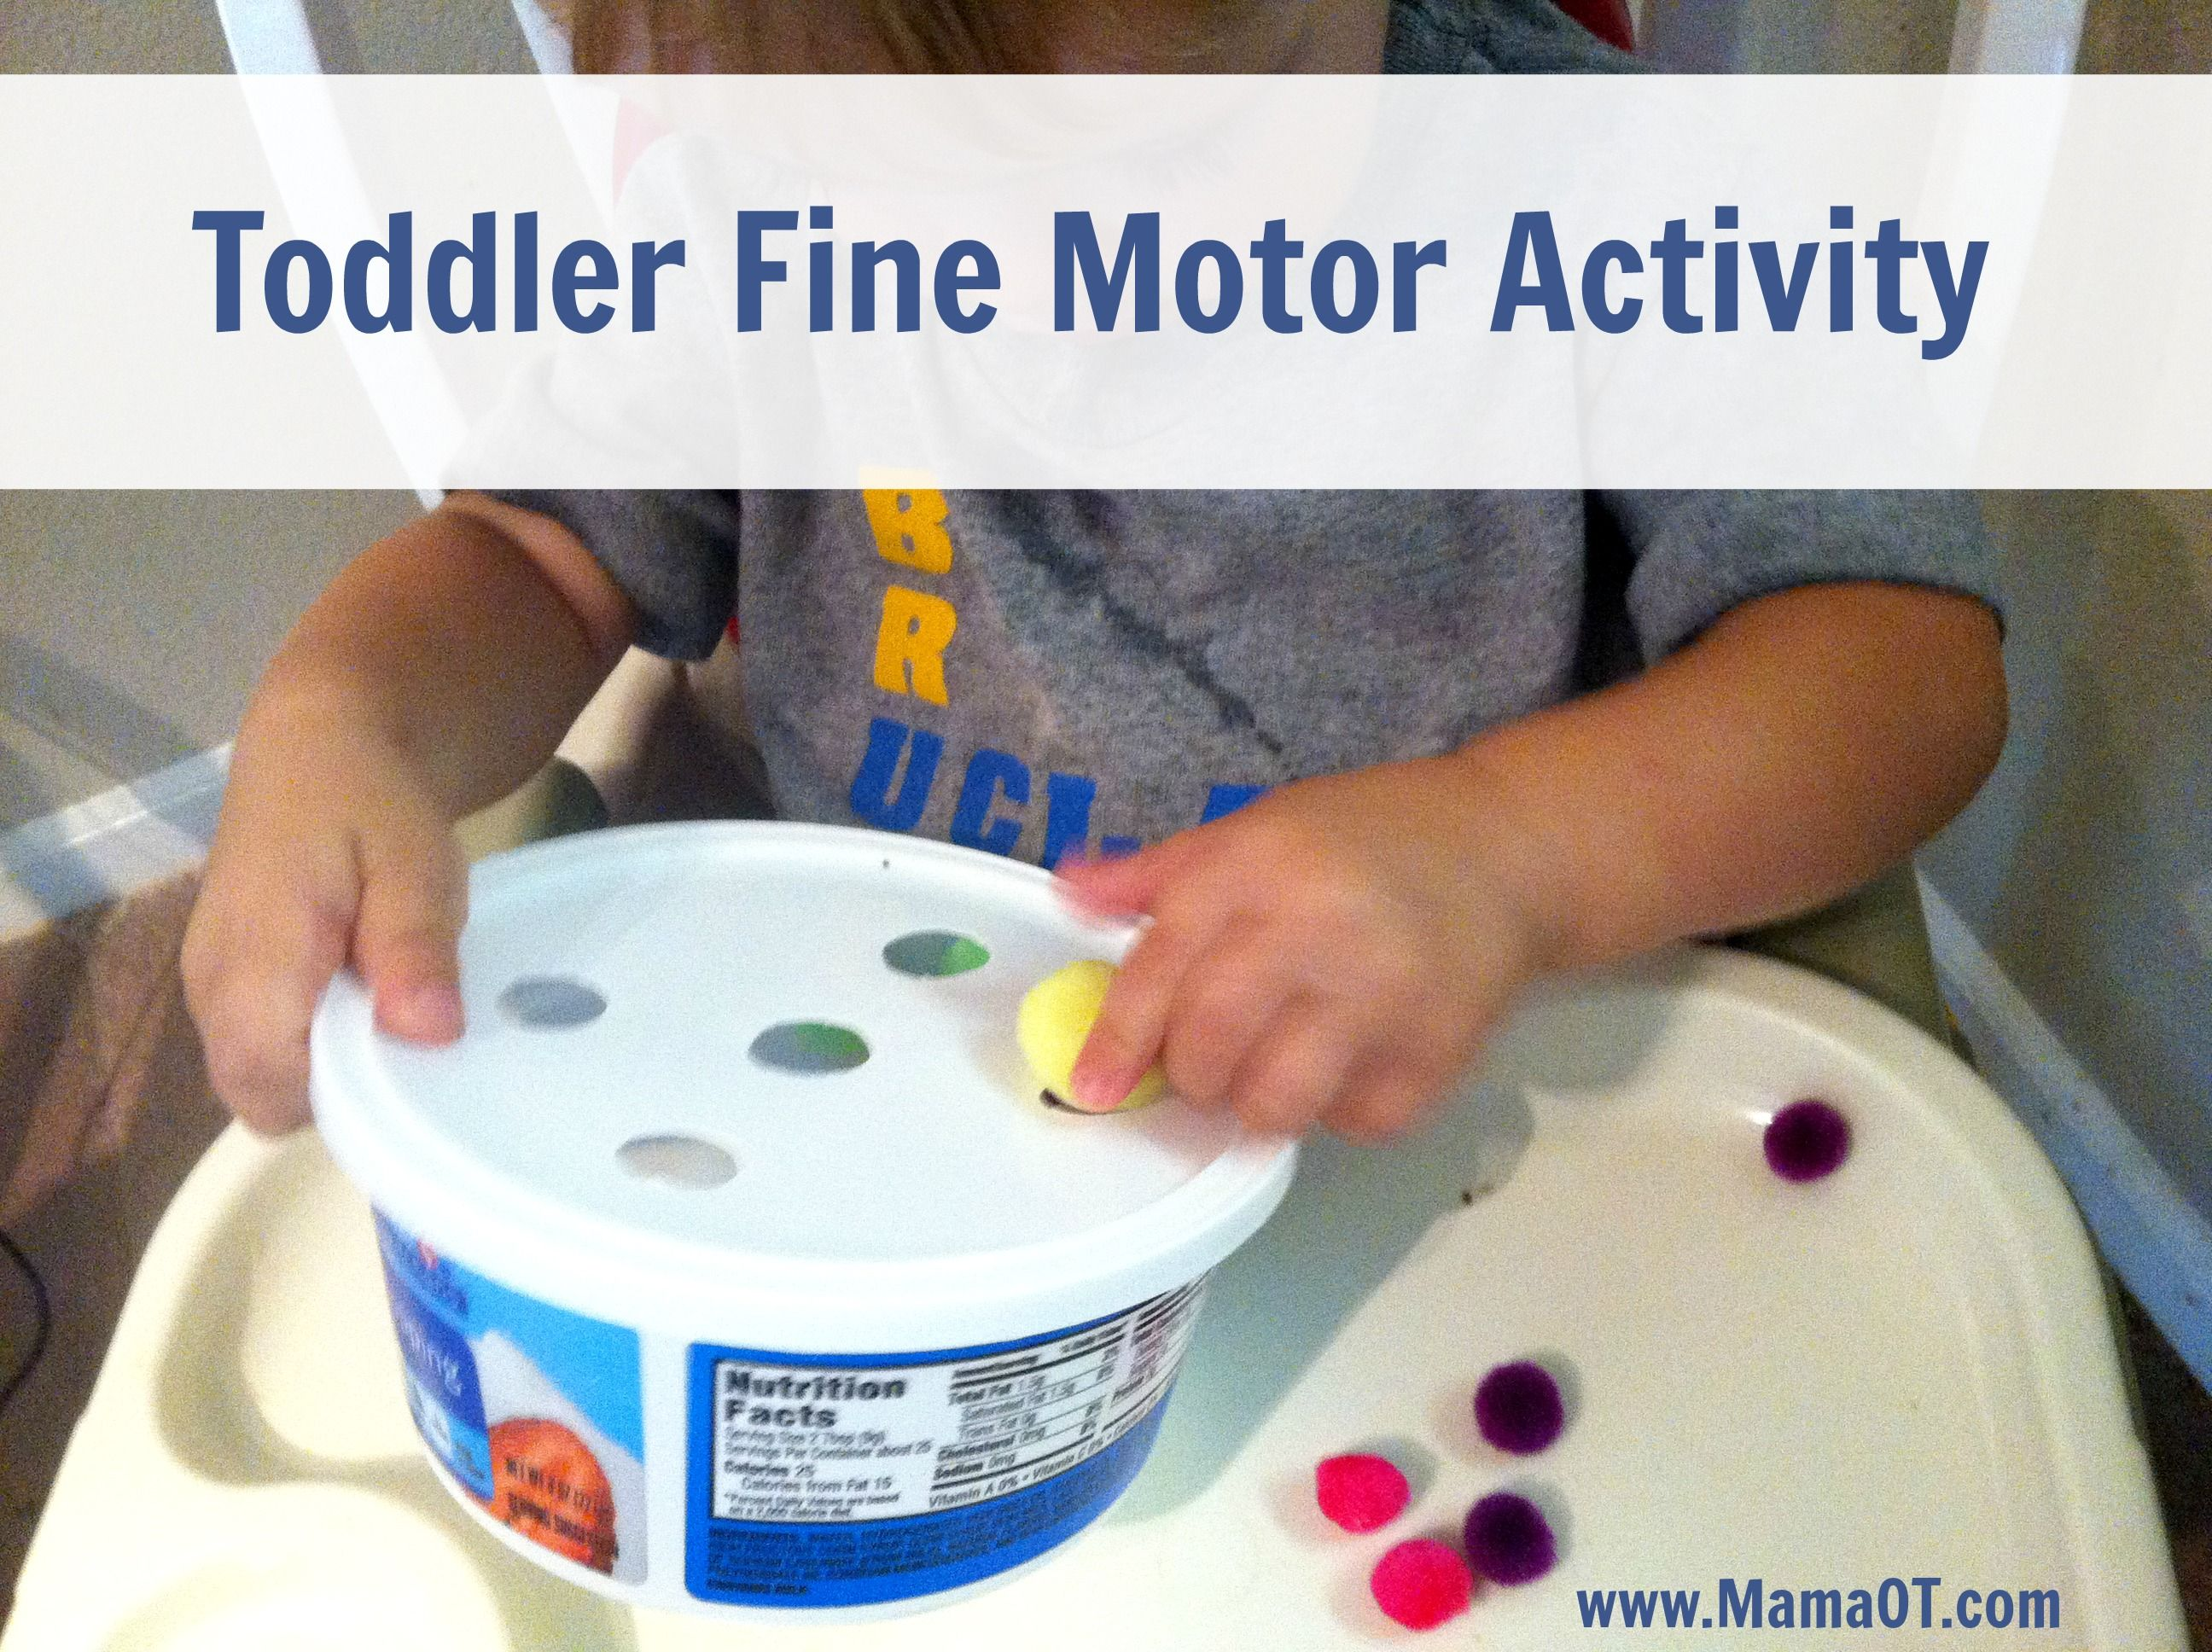 Toddler Fine Motor Activity With Pom Poms And A Plastic